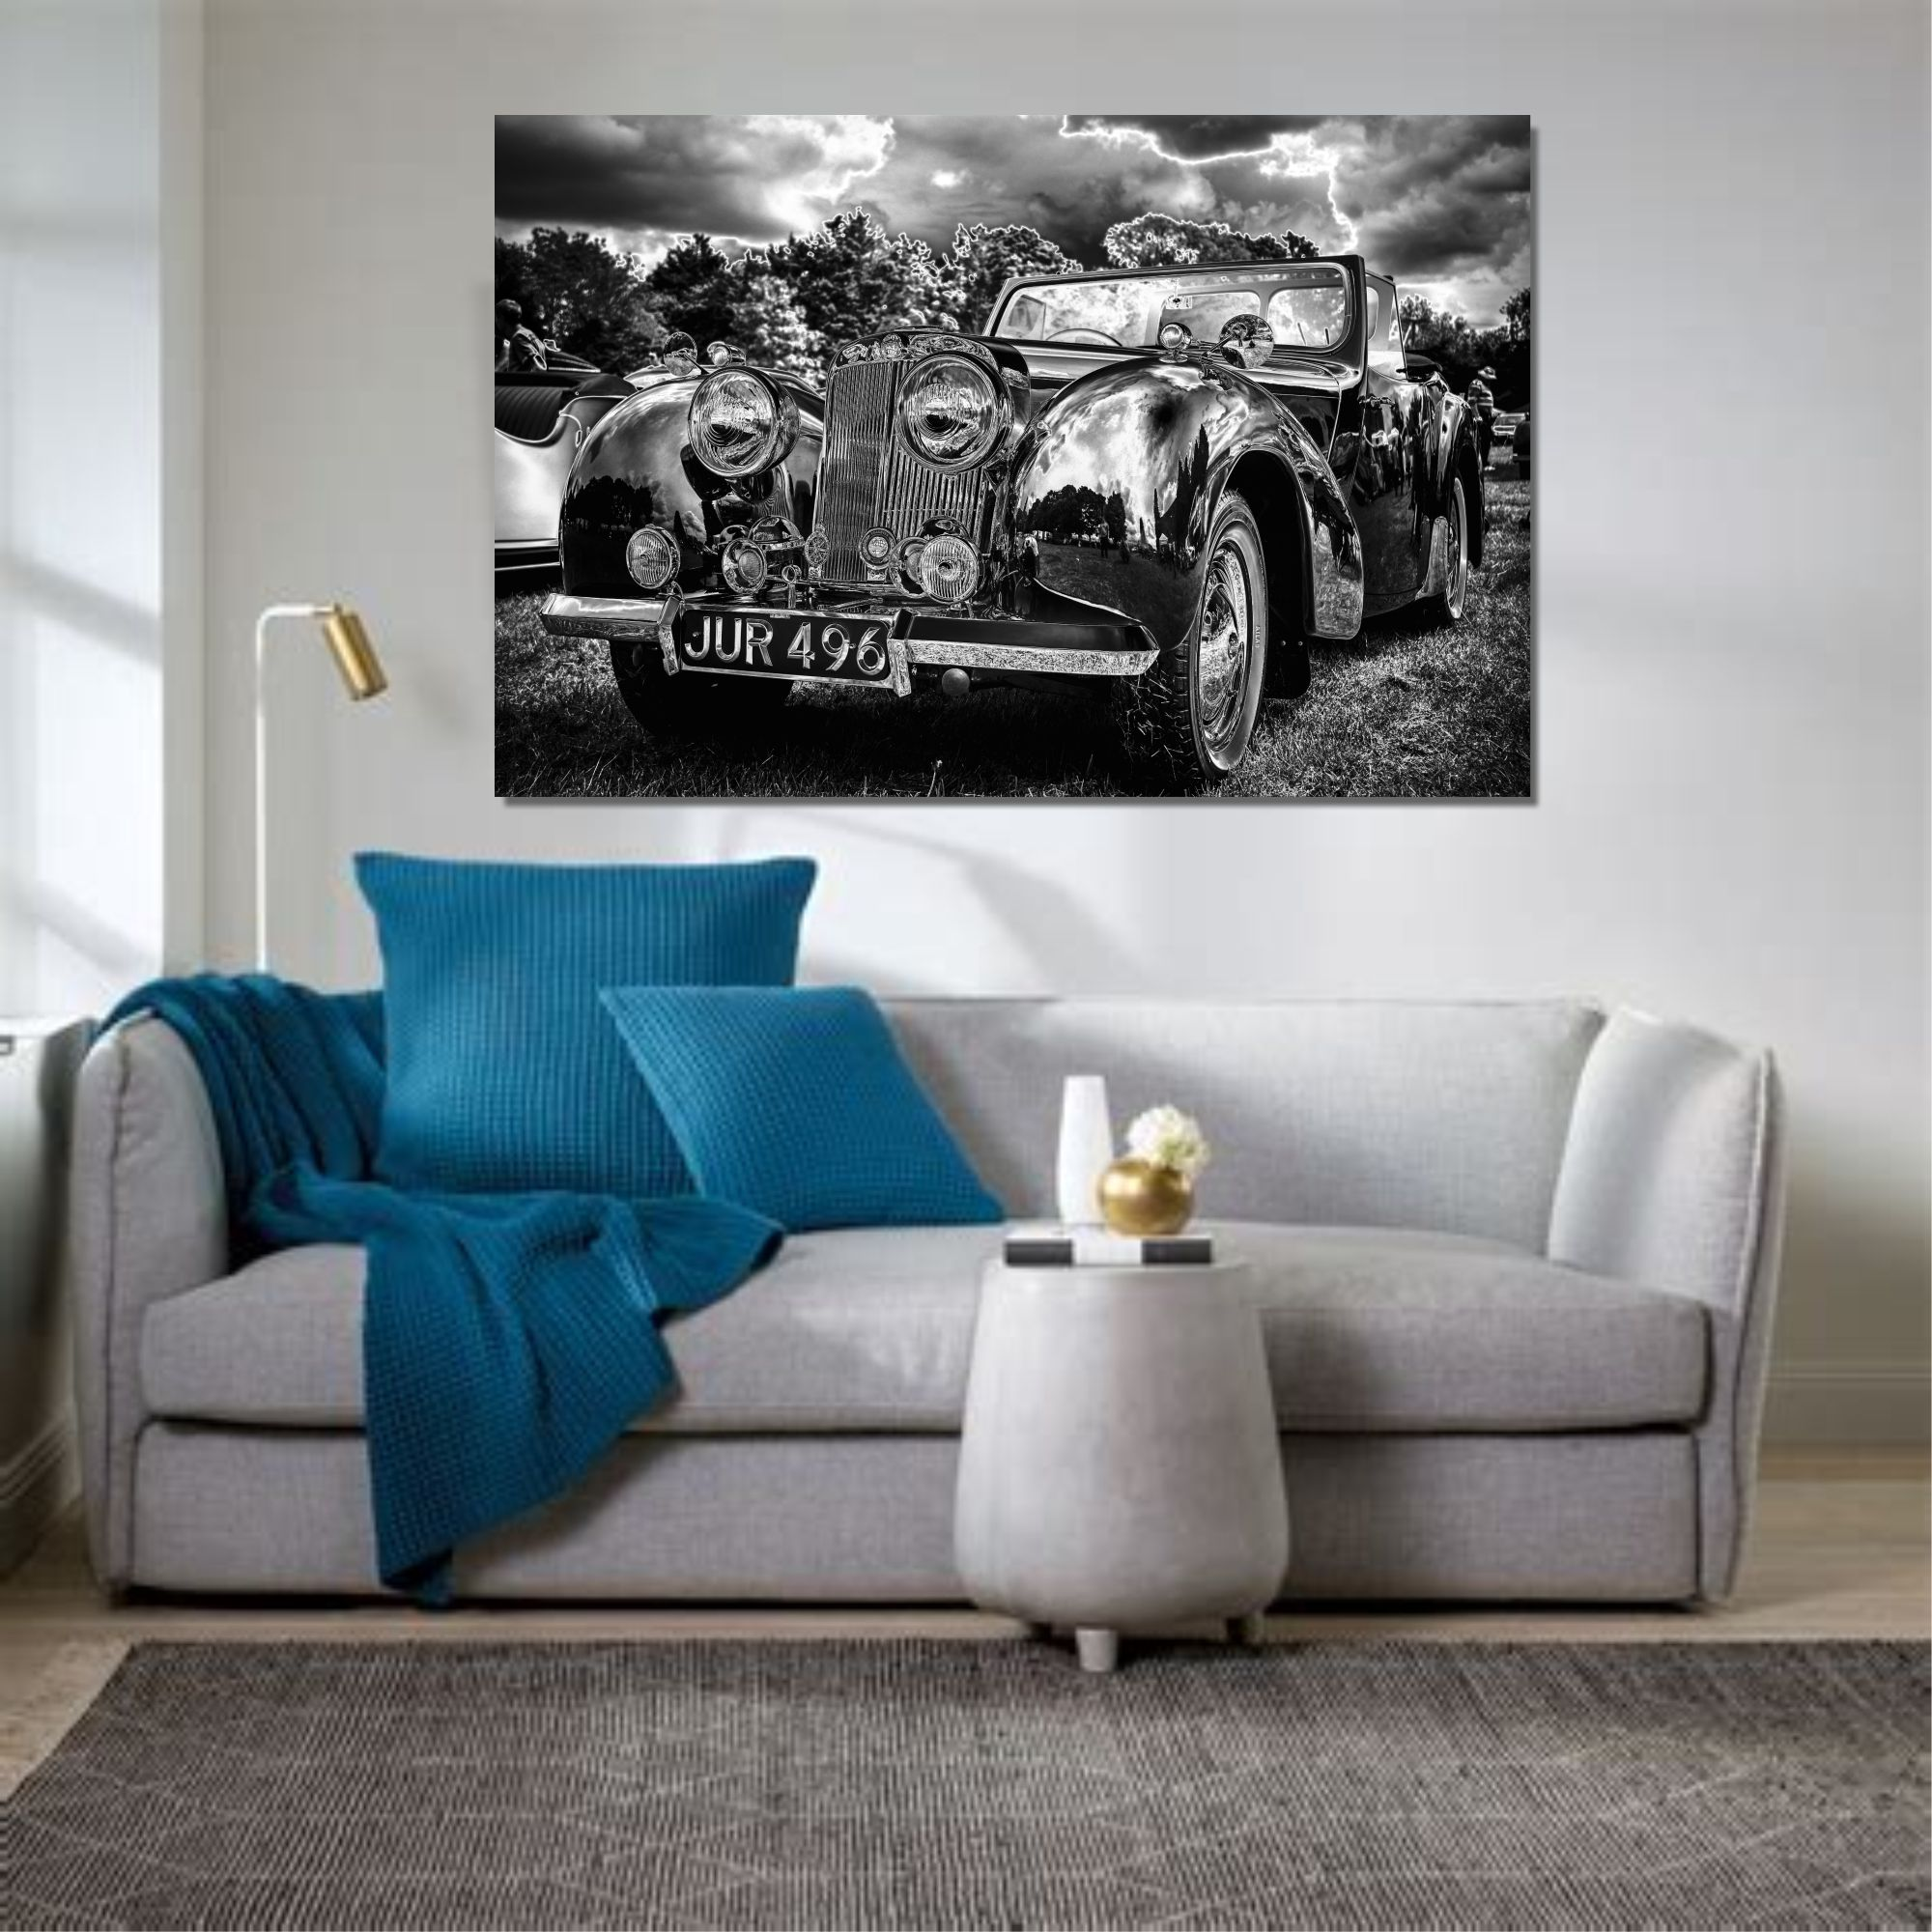 Wall Art Canvas Prints.Vintage Cab Wall Art Canvas Print